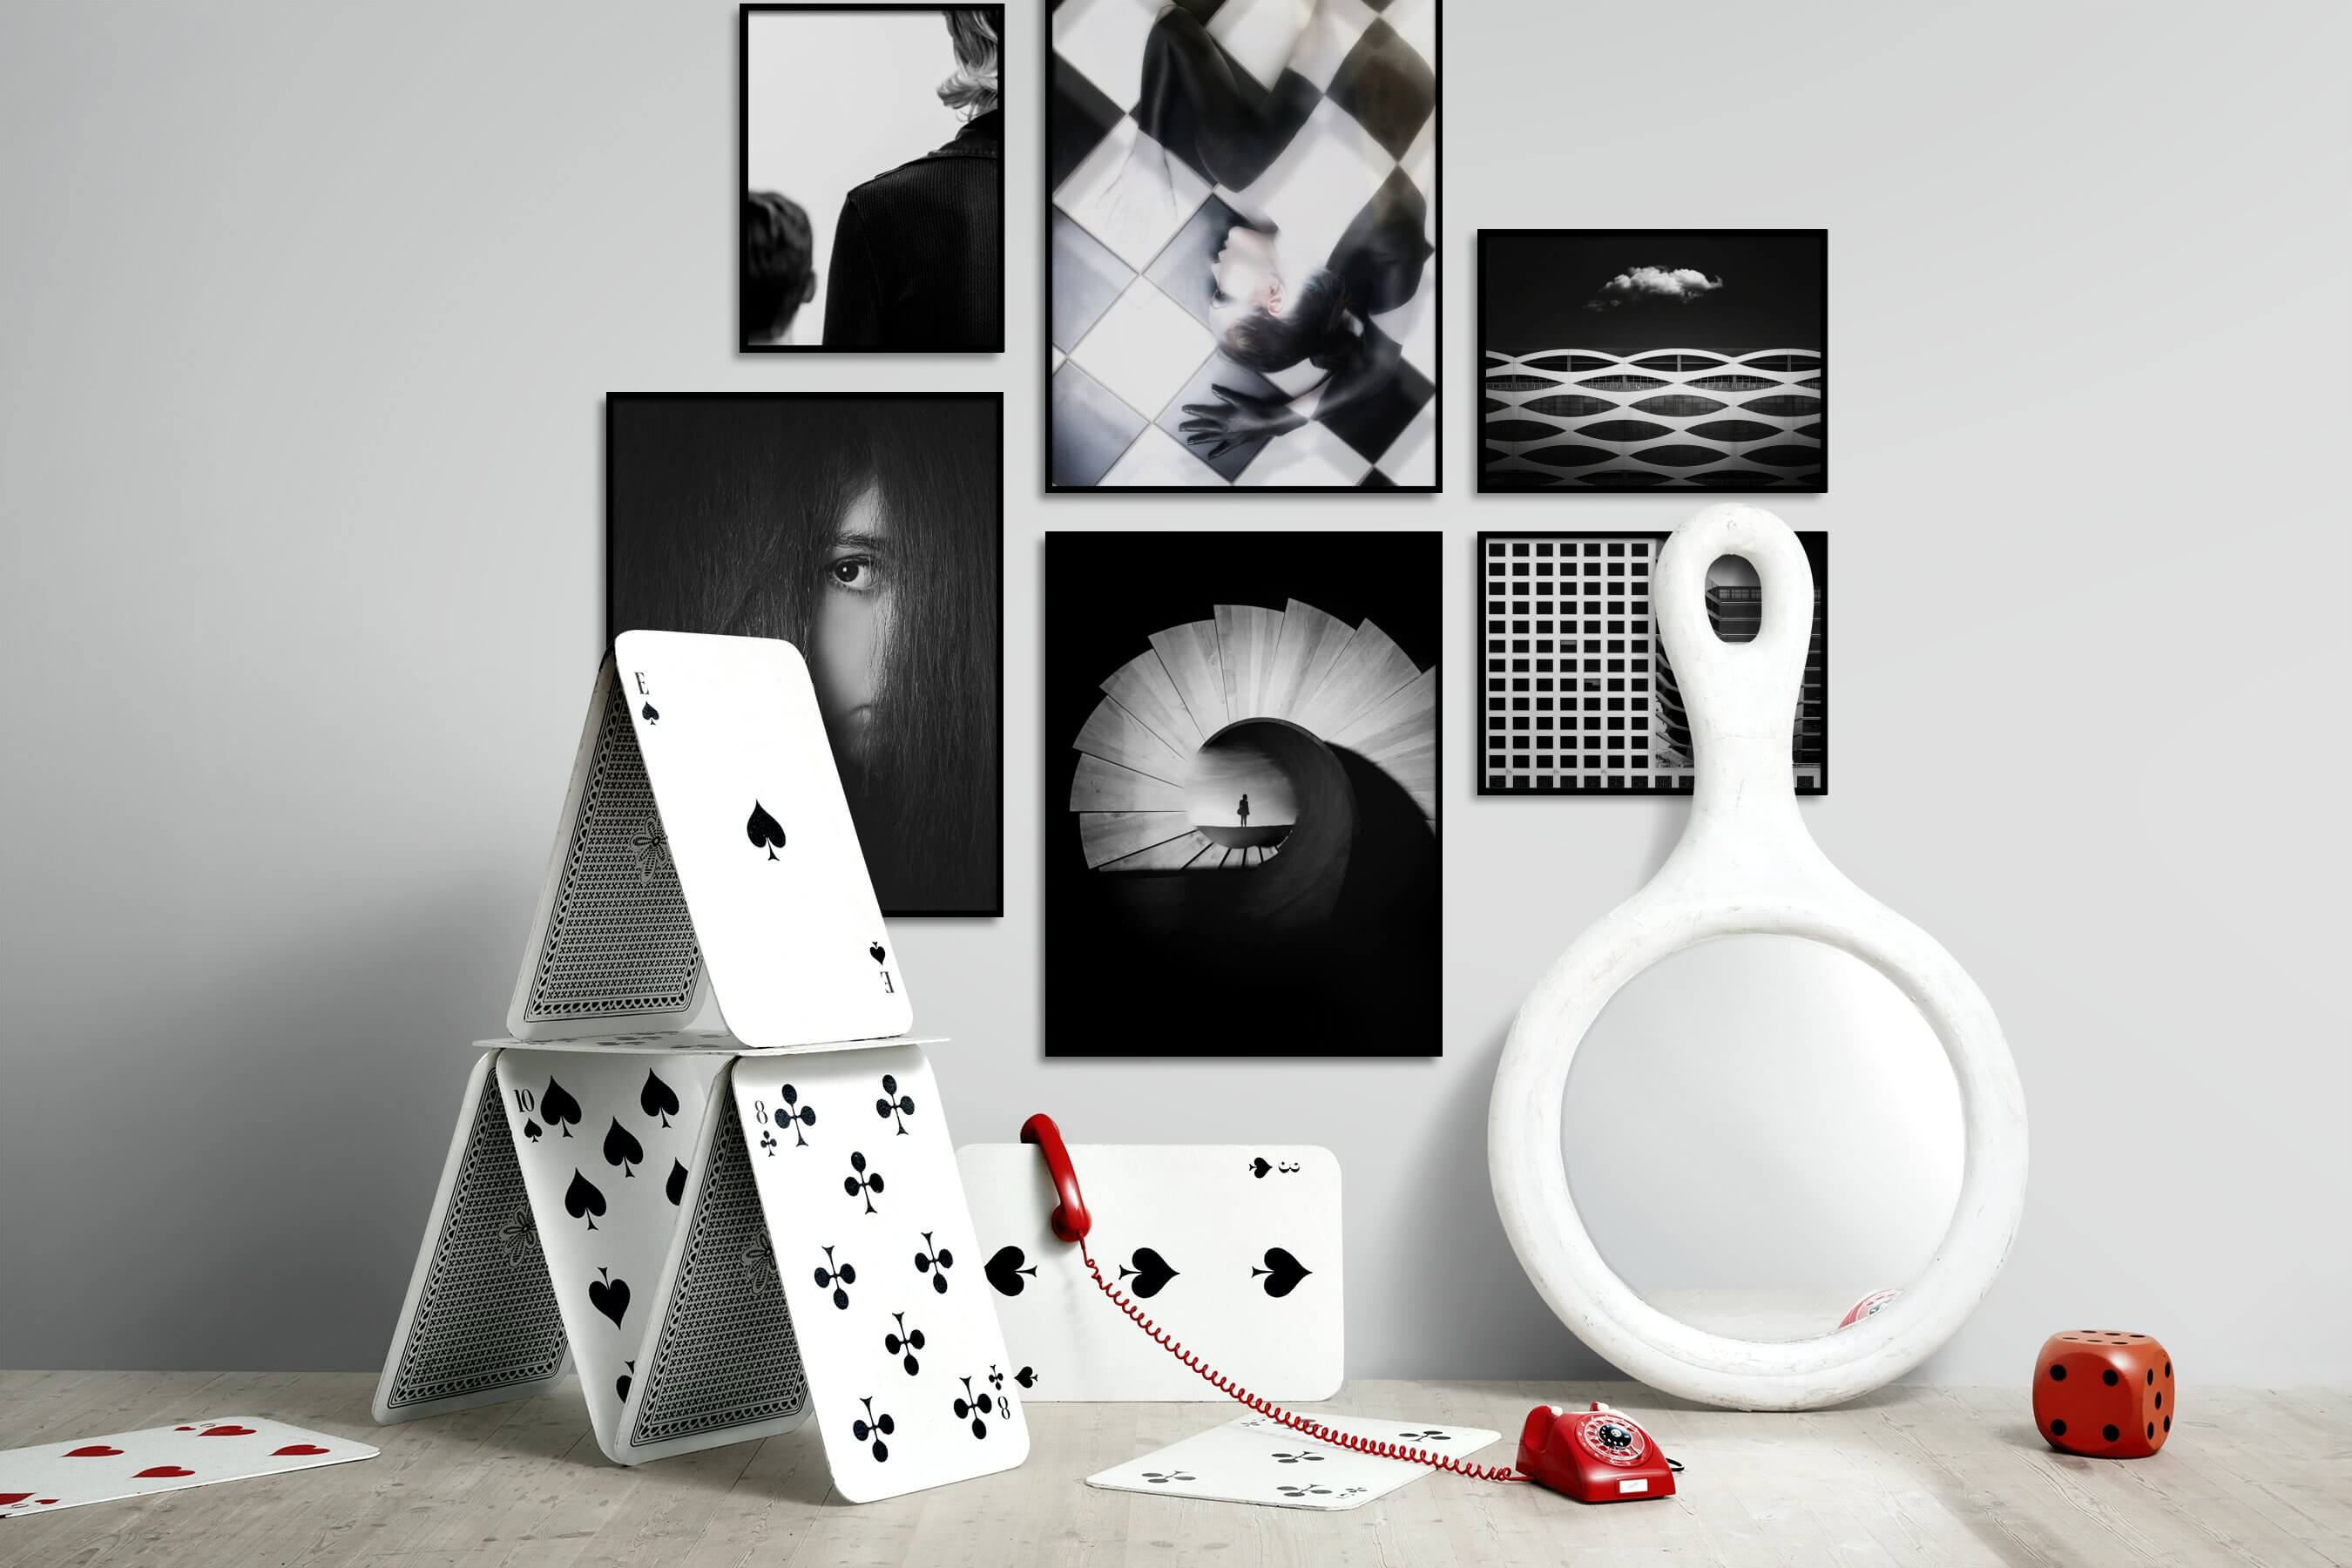 Gallery wall idea with six framed pictures arranged on a wall depicting Artsy, Black & White, Dark Tones, For the Minimalist, For the Moderate, and City Life